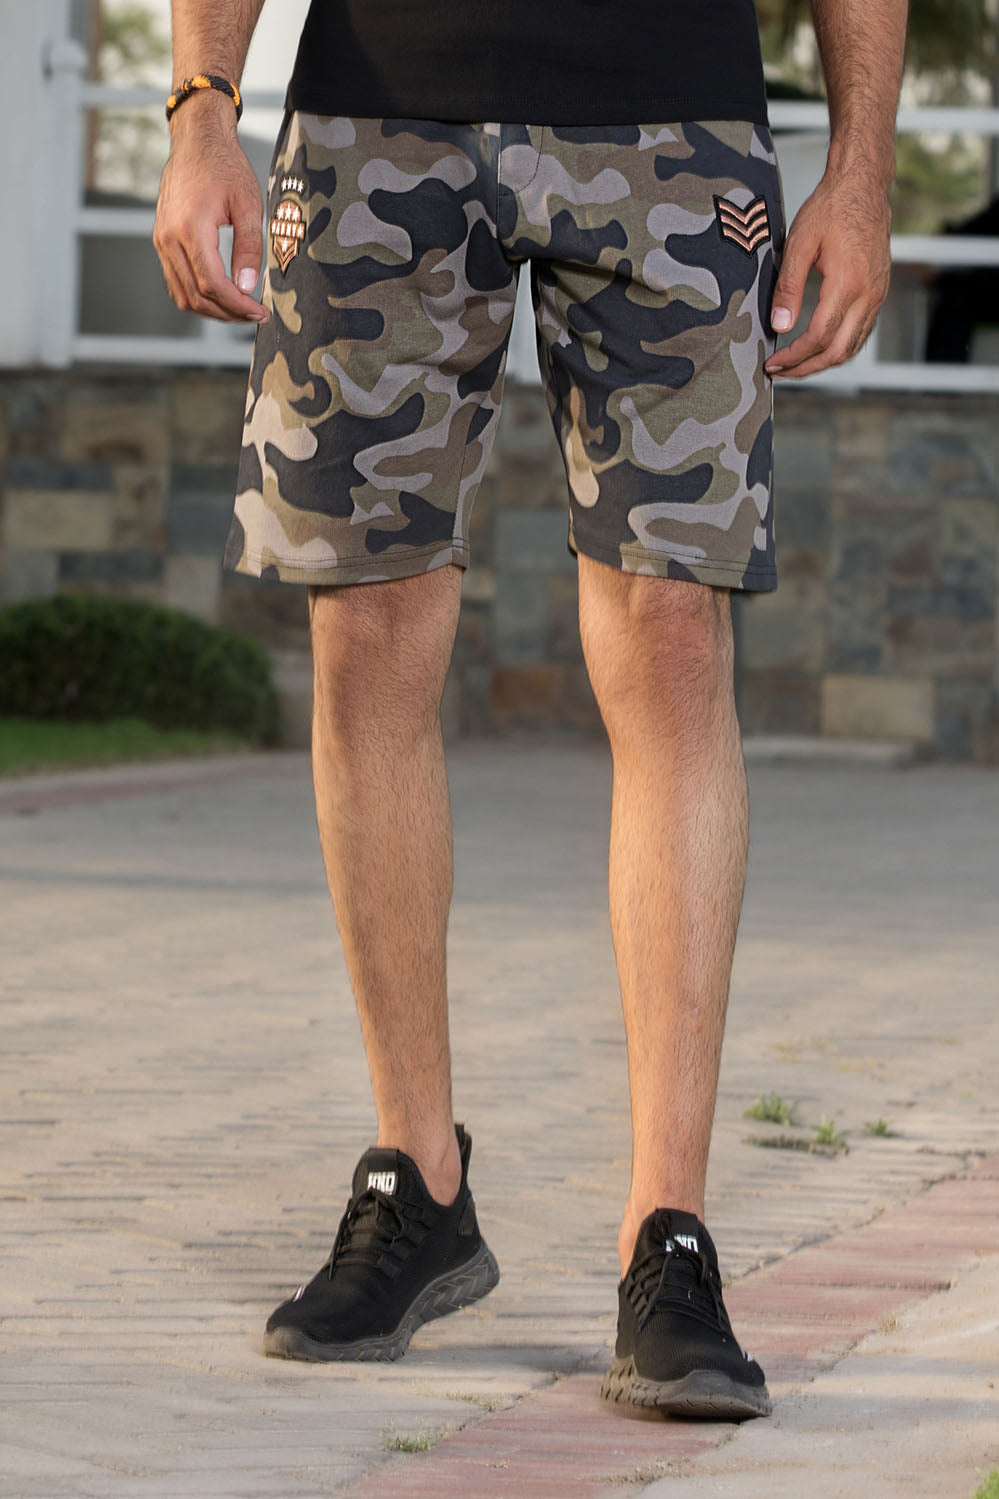 Camo Knit Short with Embroided appliques - HOPE NOT OUT